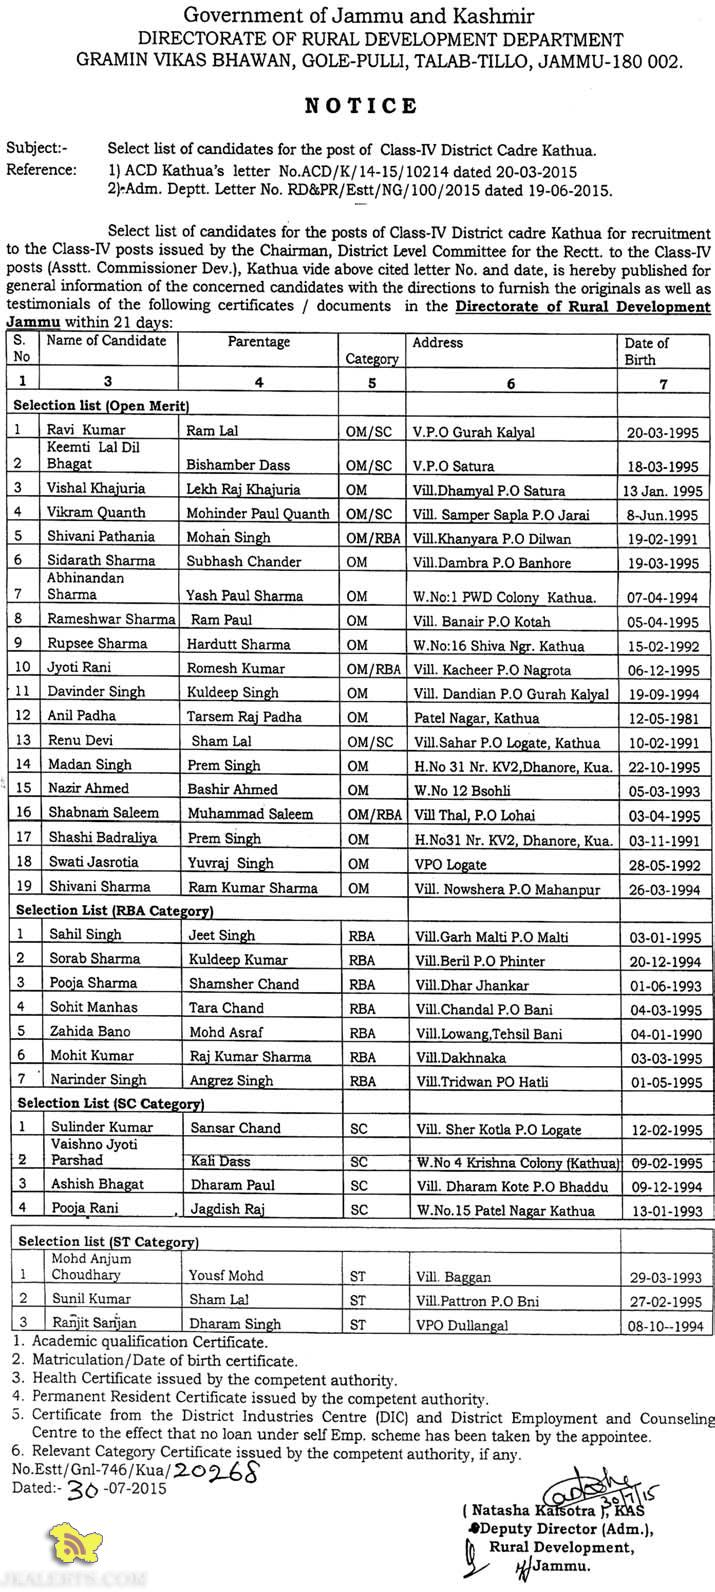 Select list of candidates for the post of Class-IV District Cadre Kathua